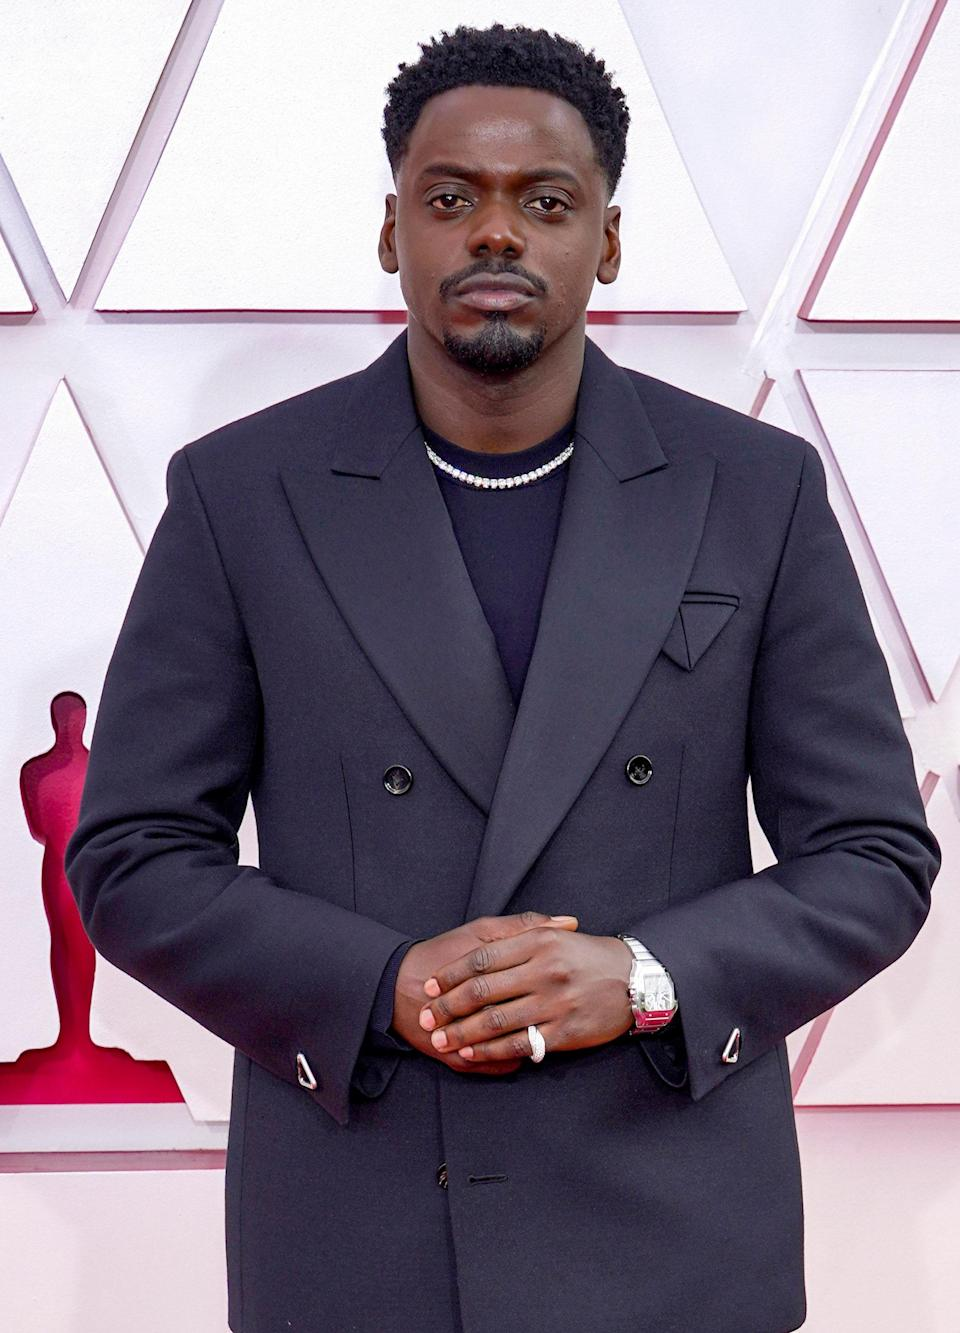 While his suit was classic and perfect for the occasion, Daniel Kaluuya's diamonds did most of the talking on the red carpet. His necklace, watch and pave pinky ring made for the perfect, bling-y accessories.